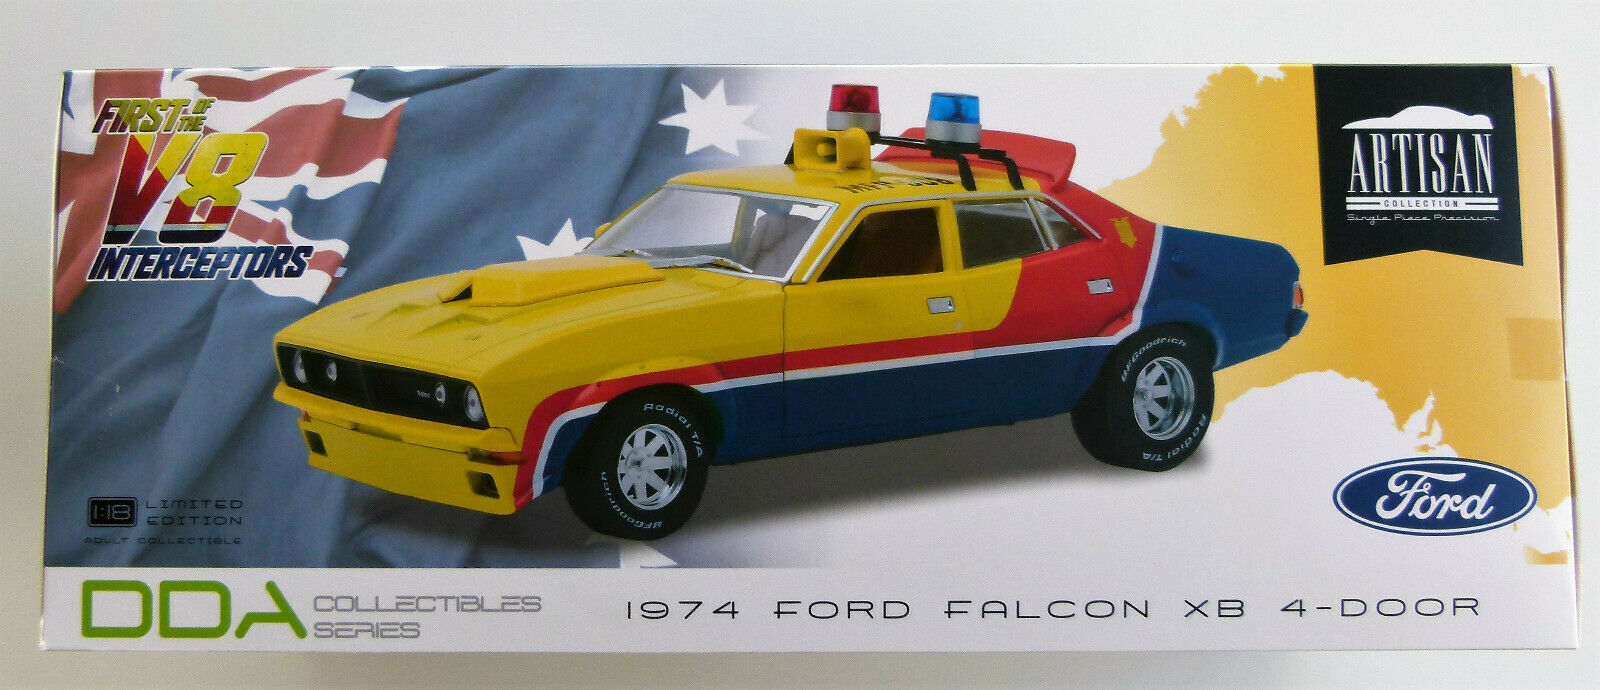 1 18 Mad-Max Ford Falcon XB Sedan 1974 Interceptor MFP (Mel Gibson) DDA